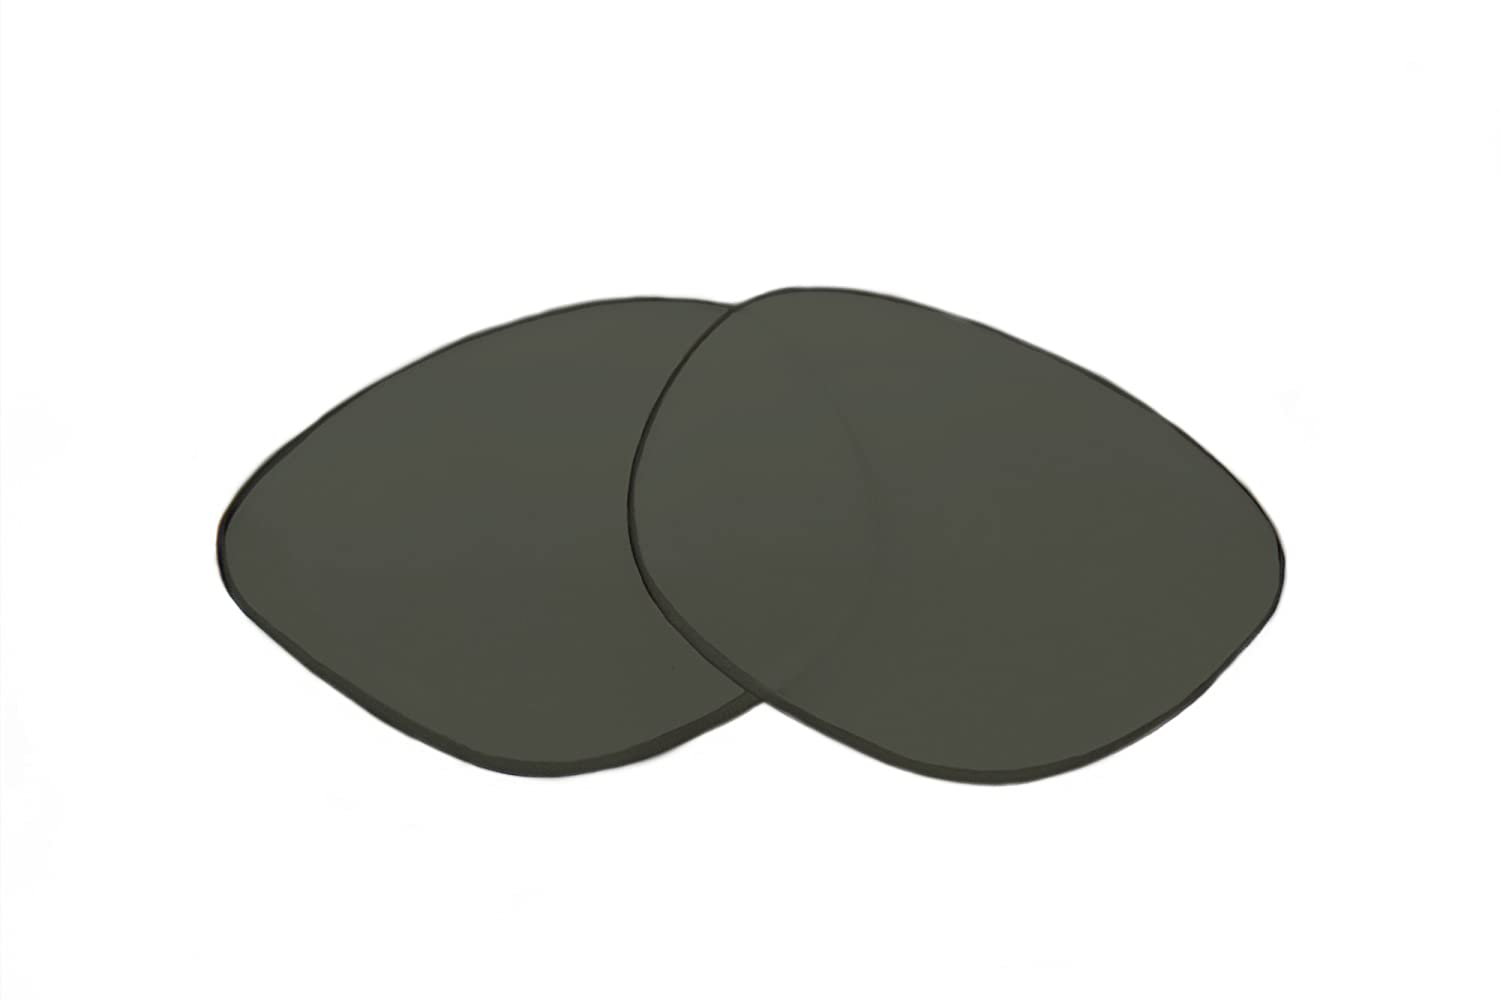 SFX Replacement Sunglass Lenses fits Electric Black Top 60mm Wide